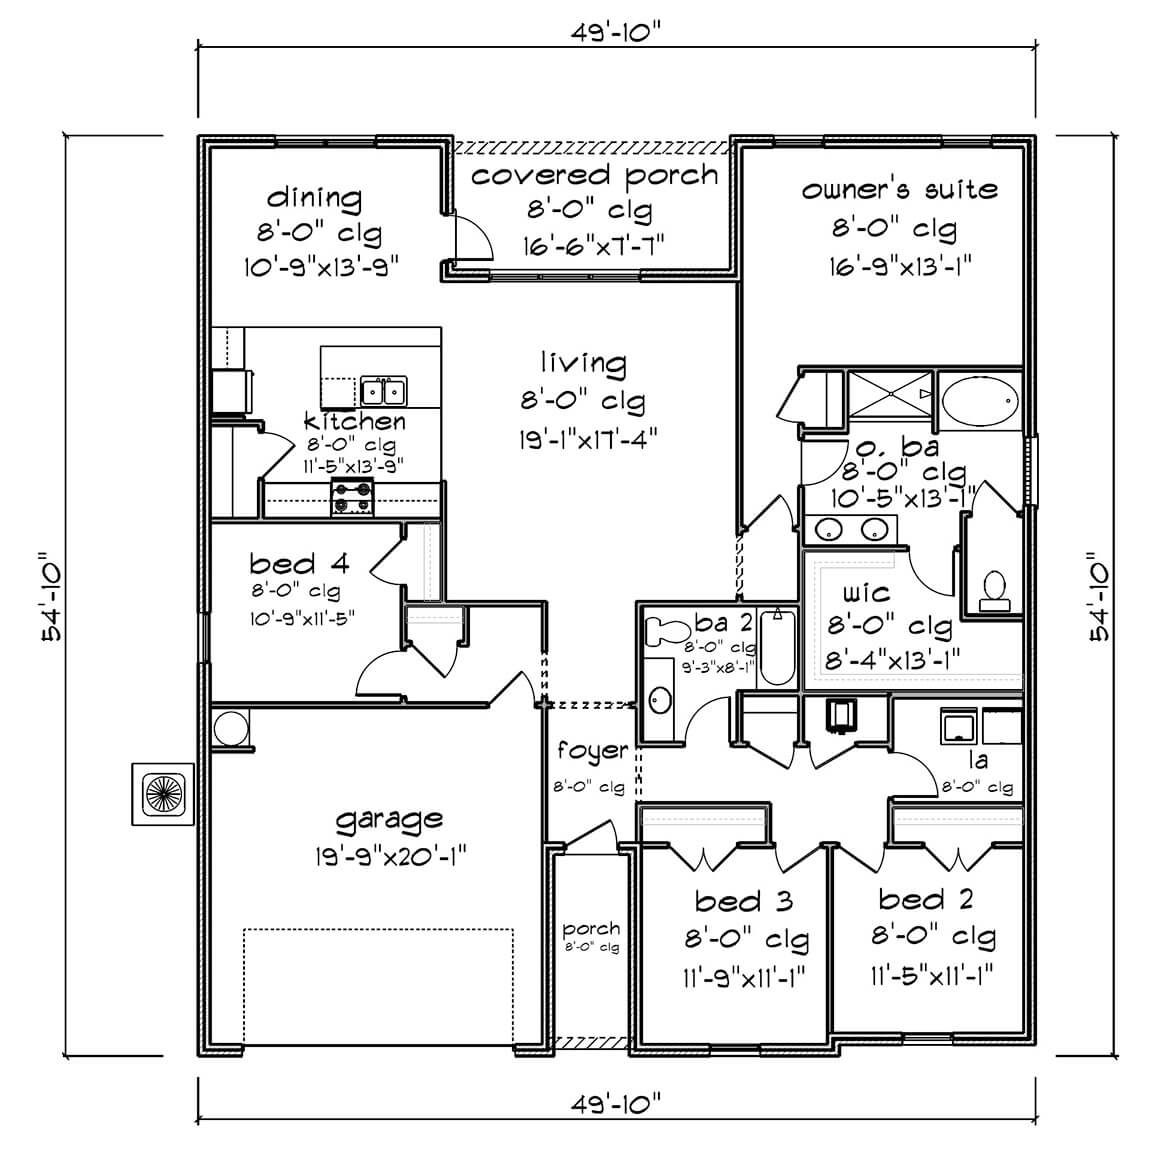 Cairn_M_Floor Plan movetobaldwincounty.com Urban Property